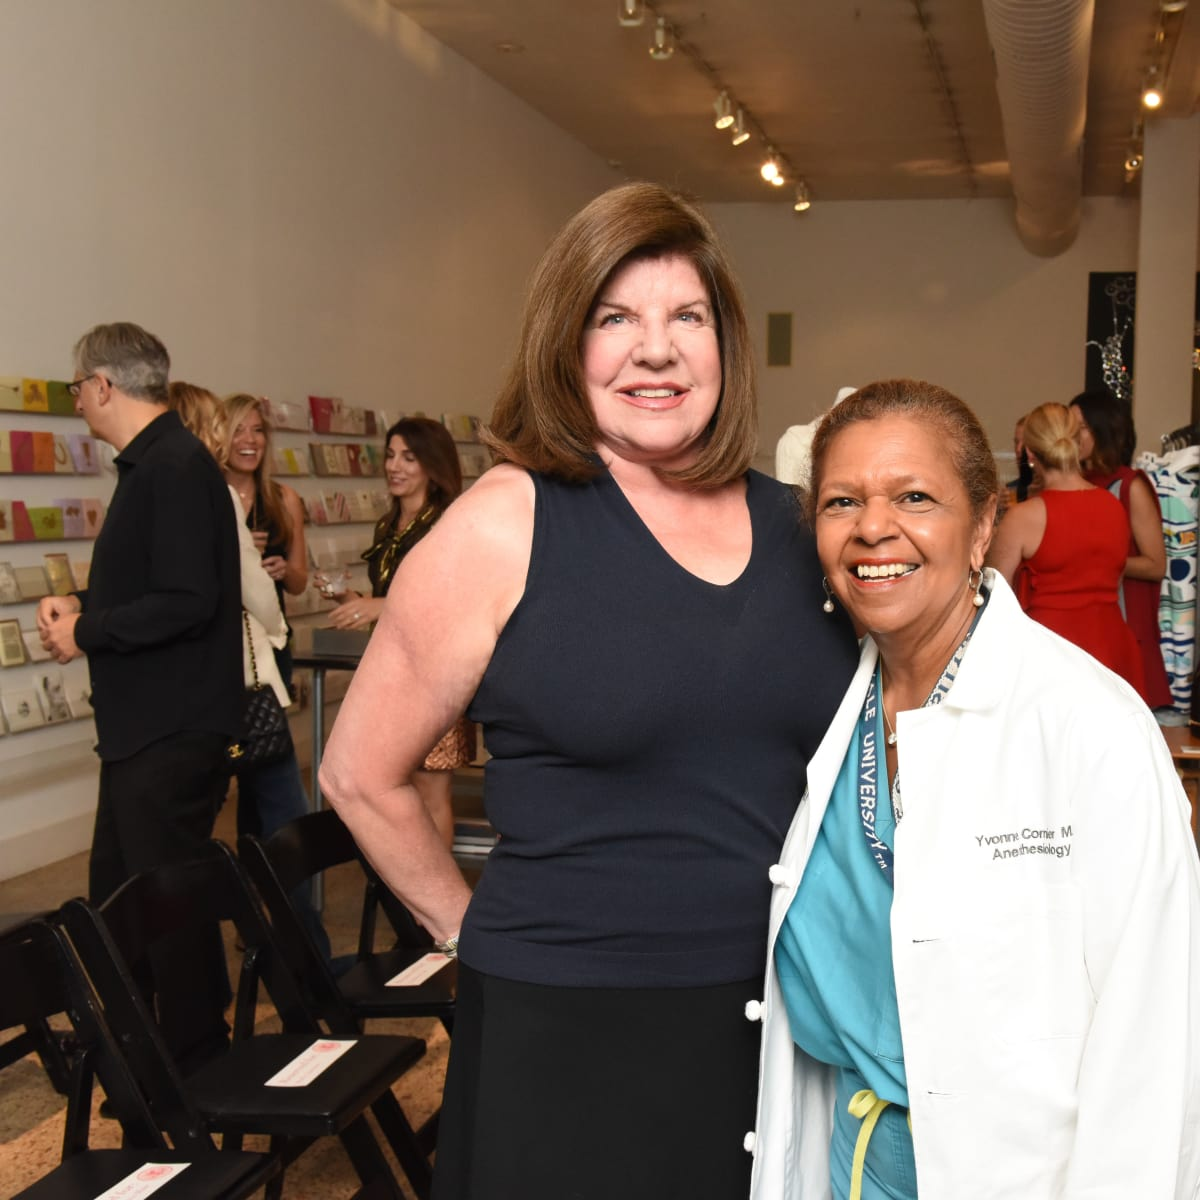 Julia Frankel and Yvonne Cormier at Recipe for Success Dress for Dinner event